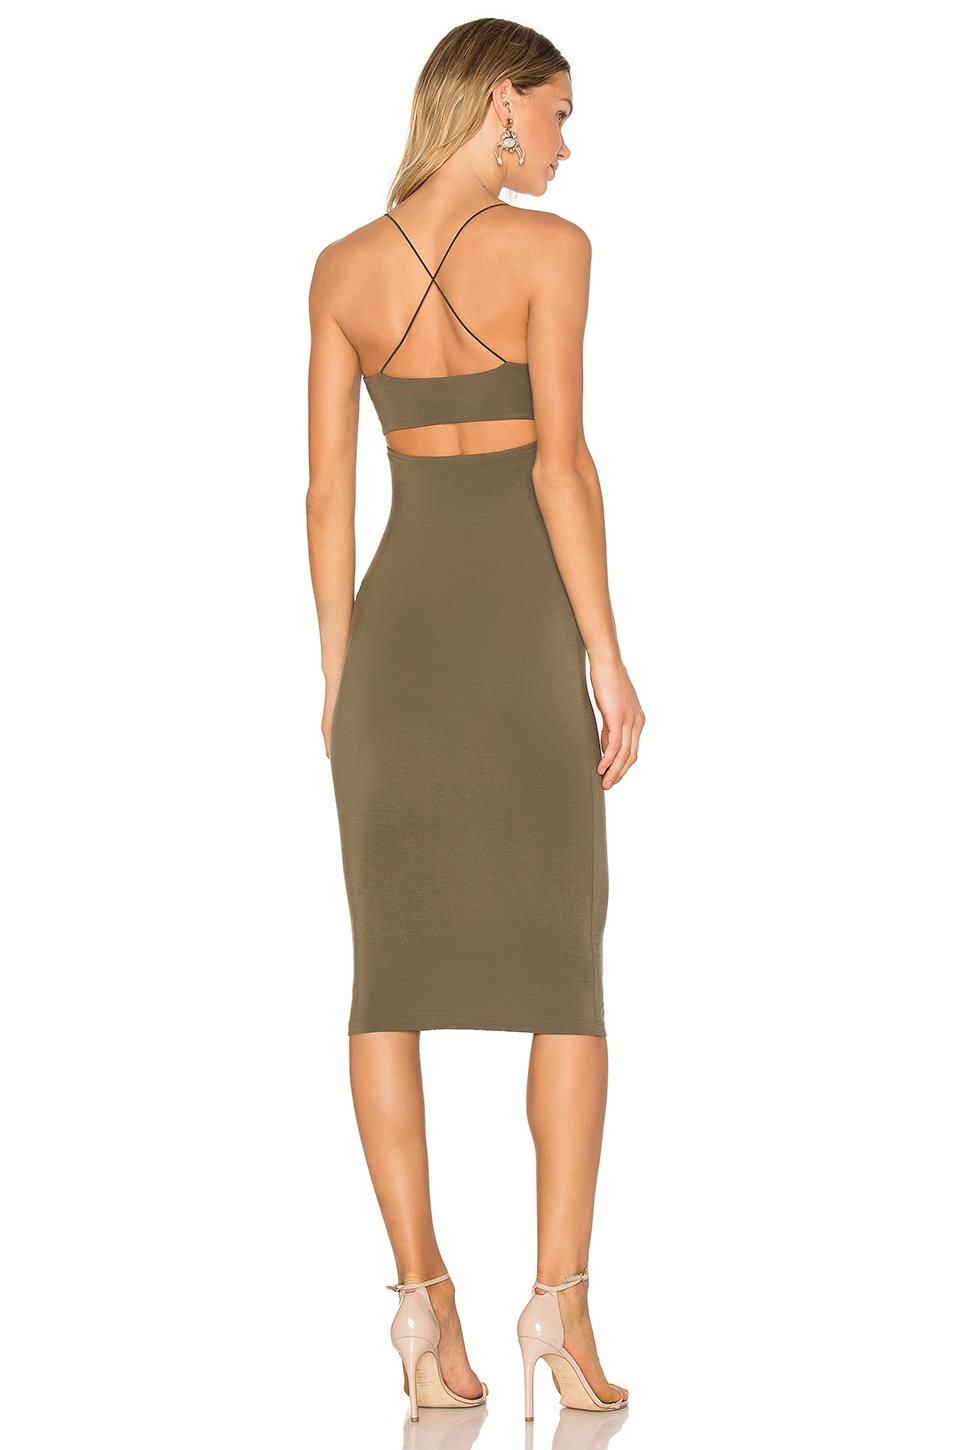 T by Alexander Wang Strappy Tank Dress in Military